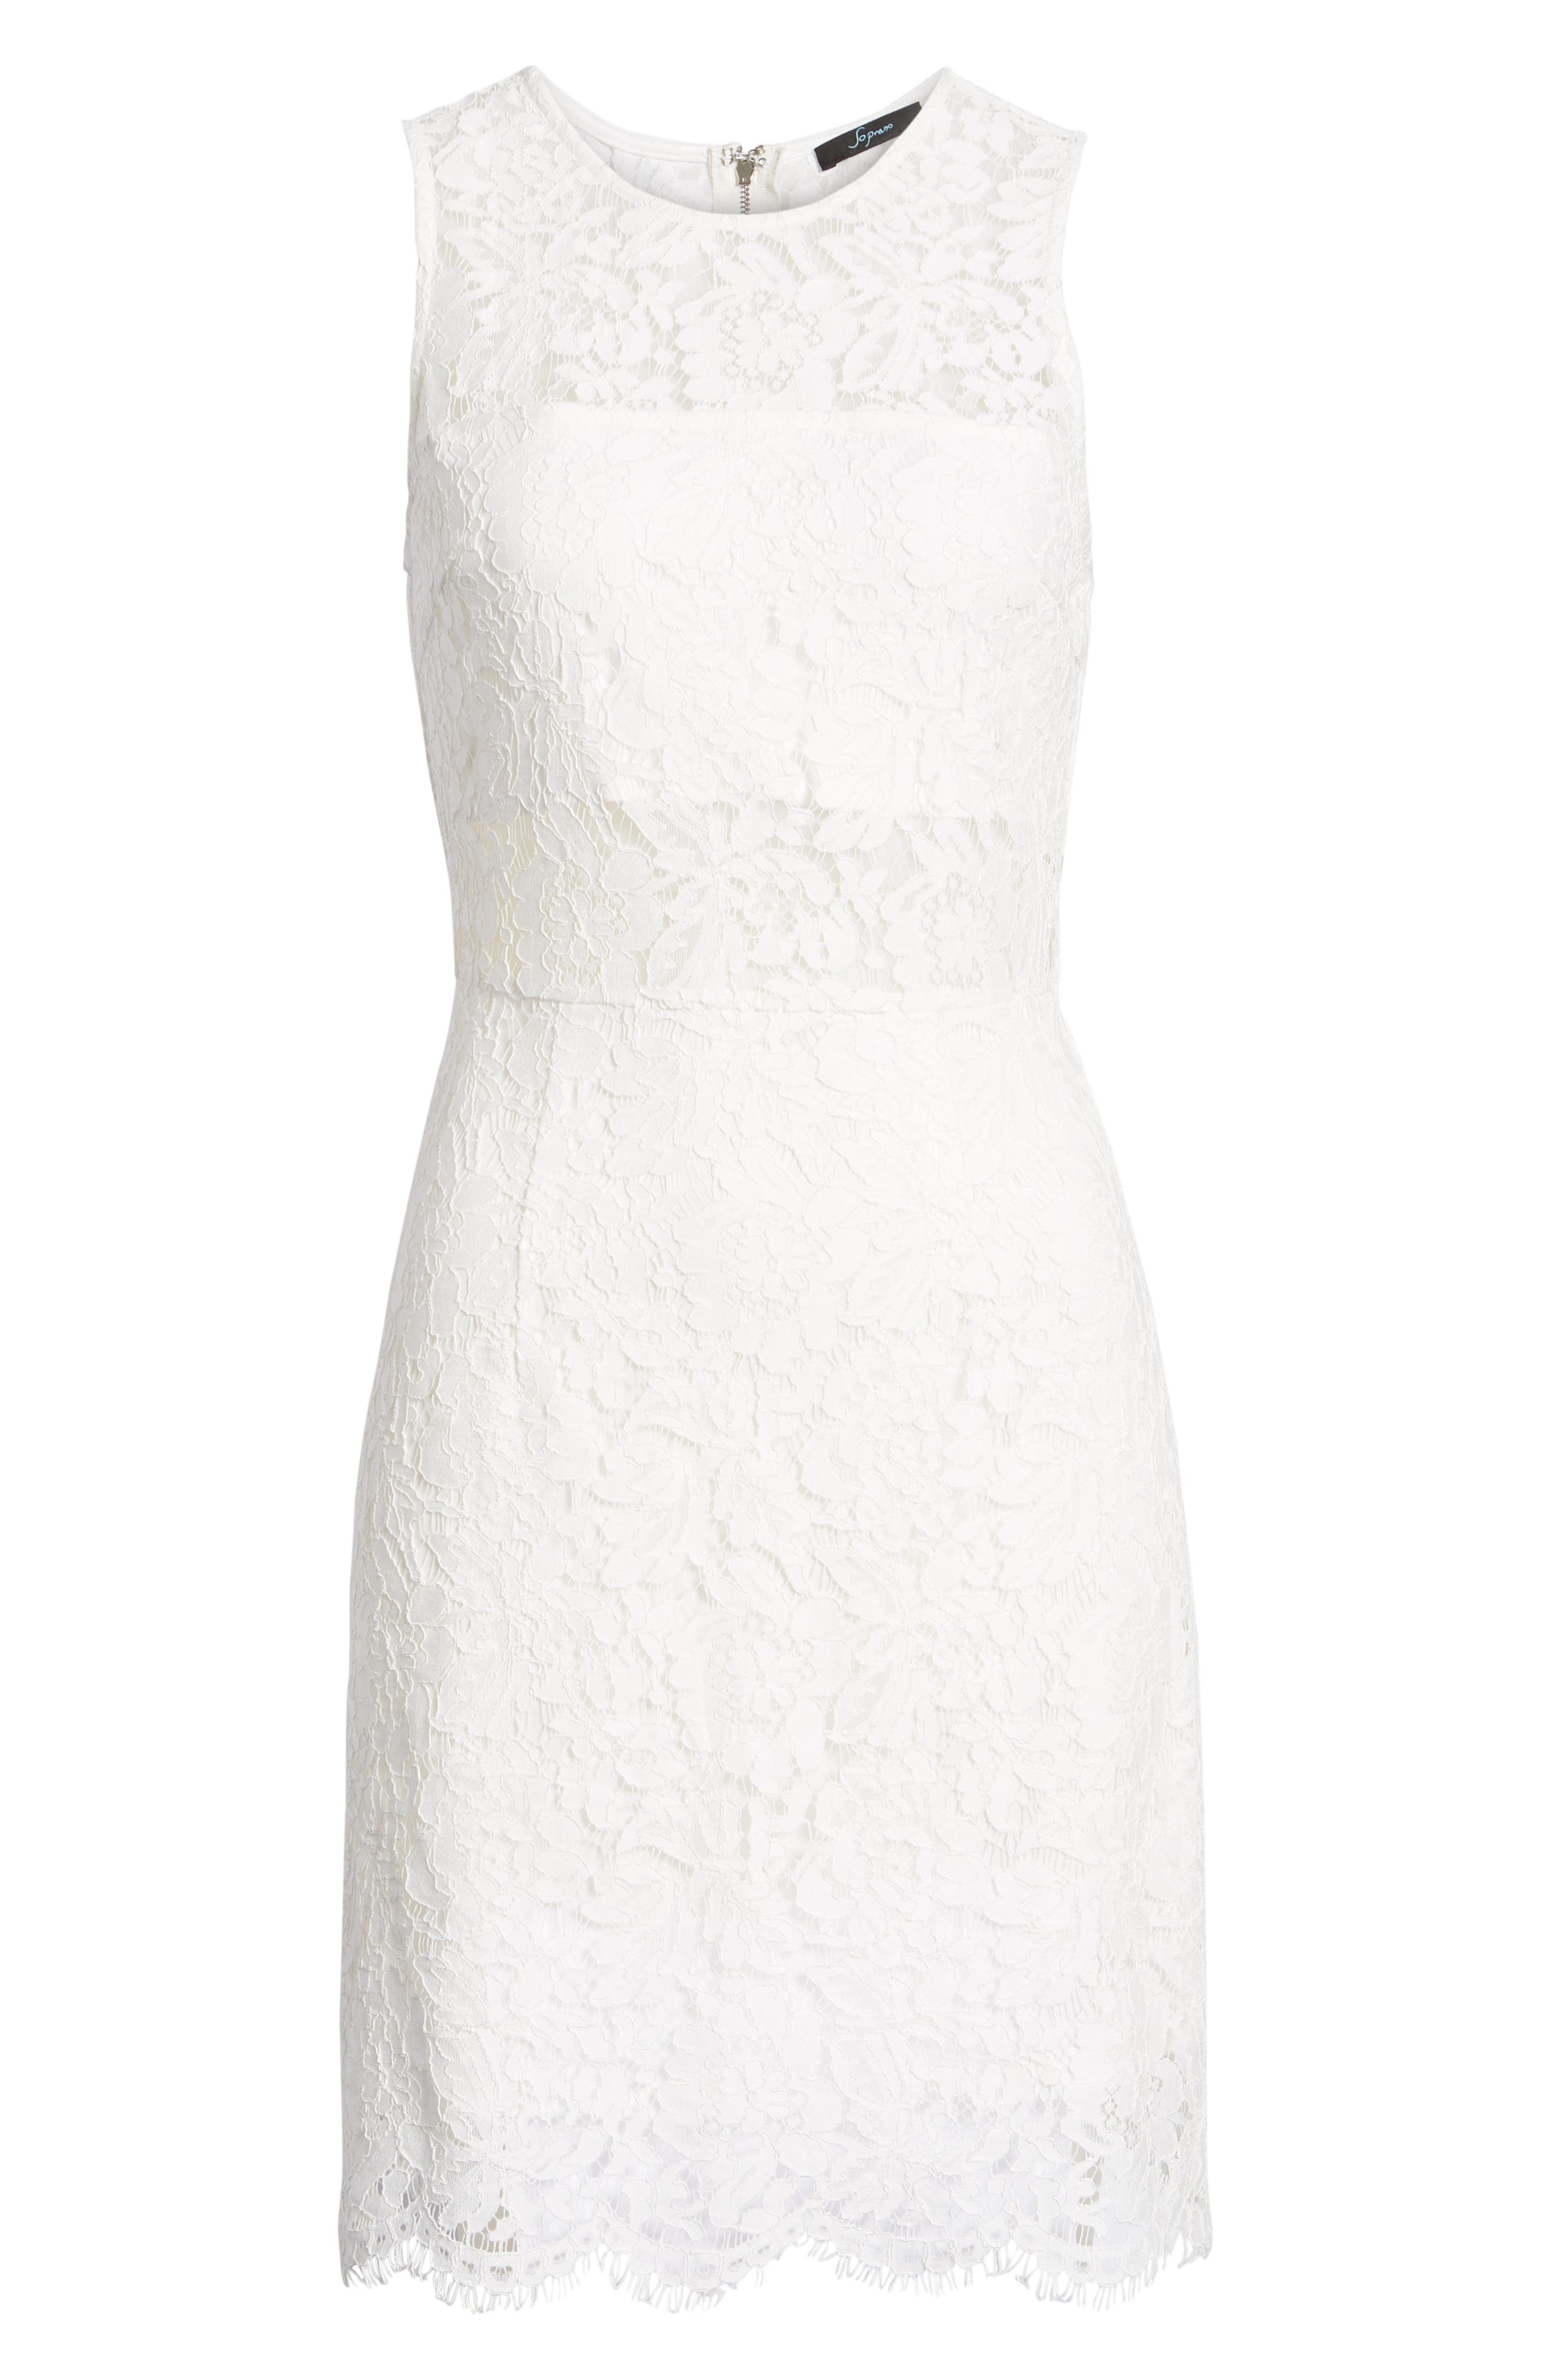 Lace Sheath Dress,                             Alternate thumbnail 7, color,                             900